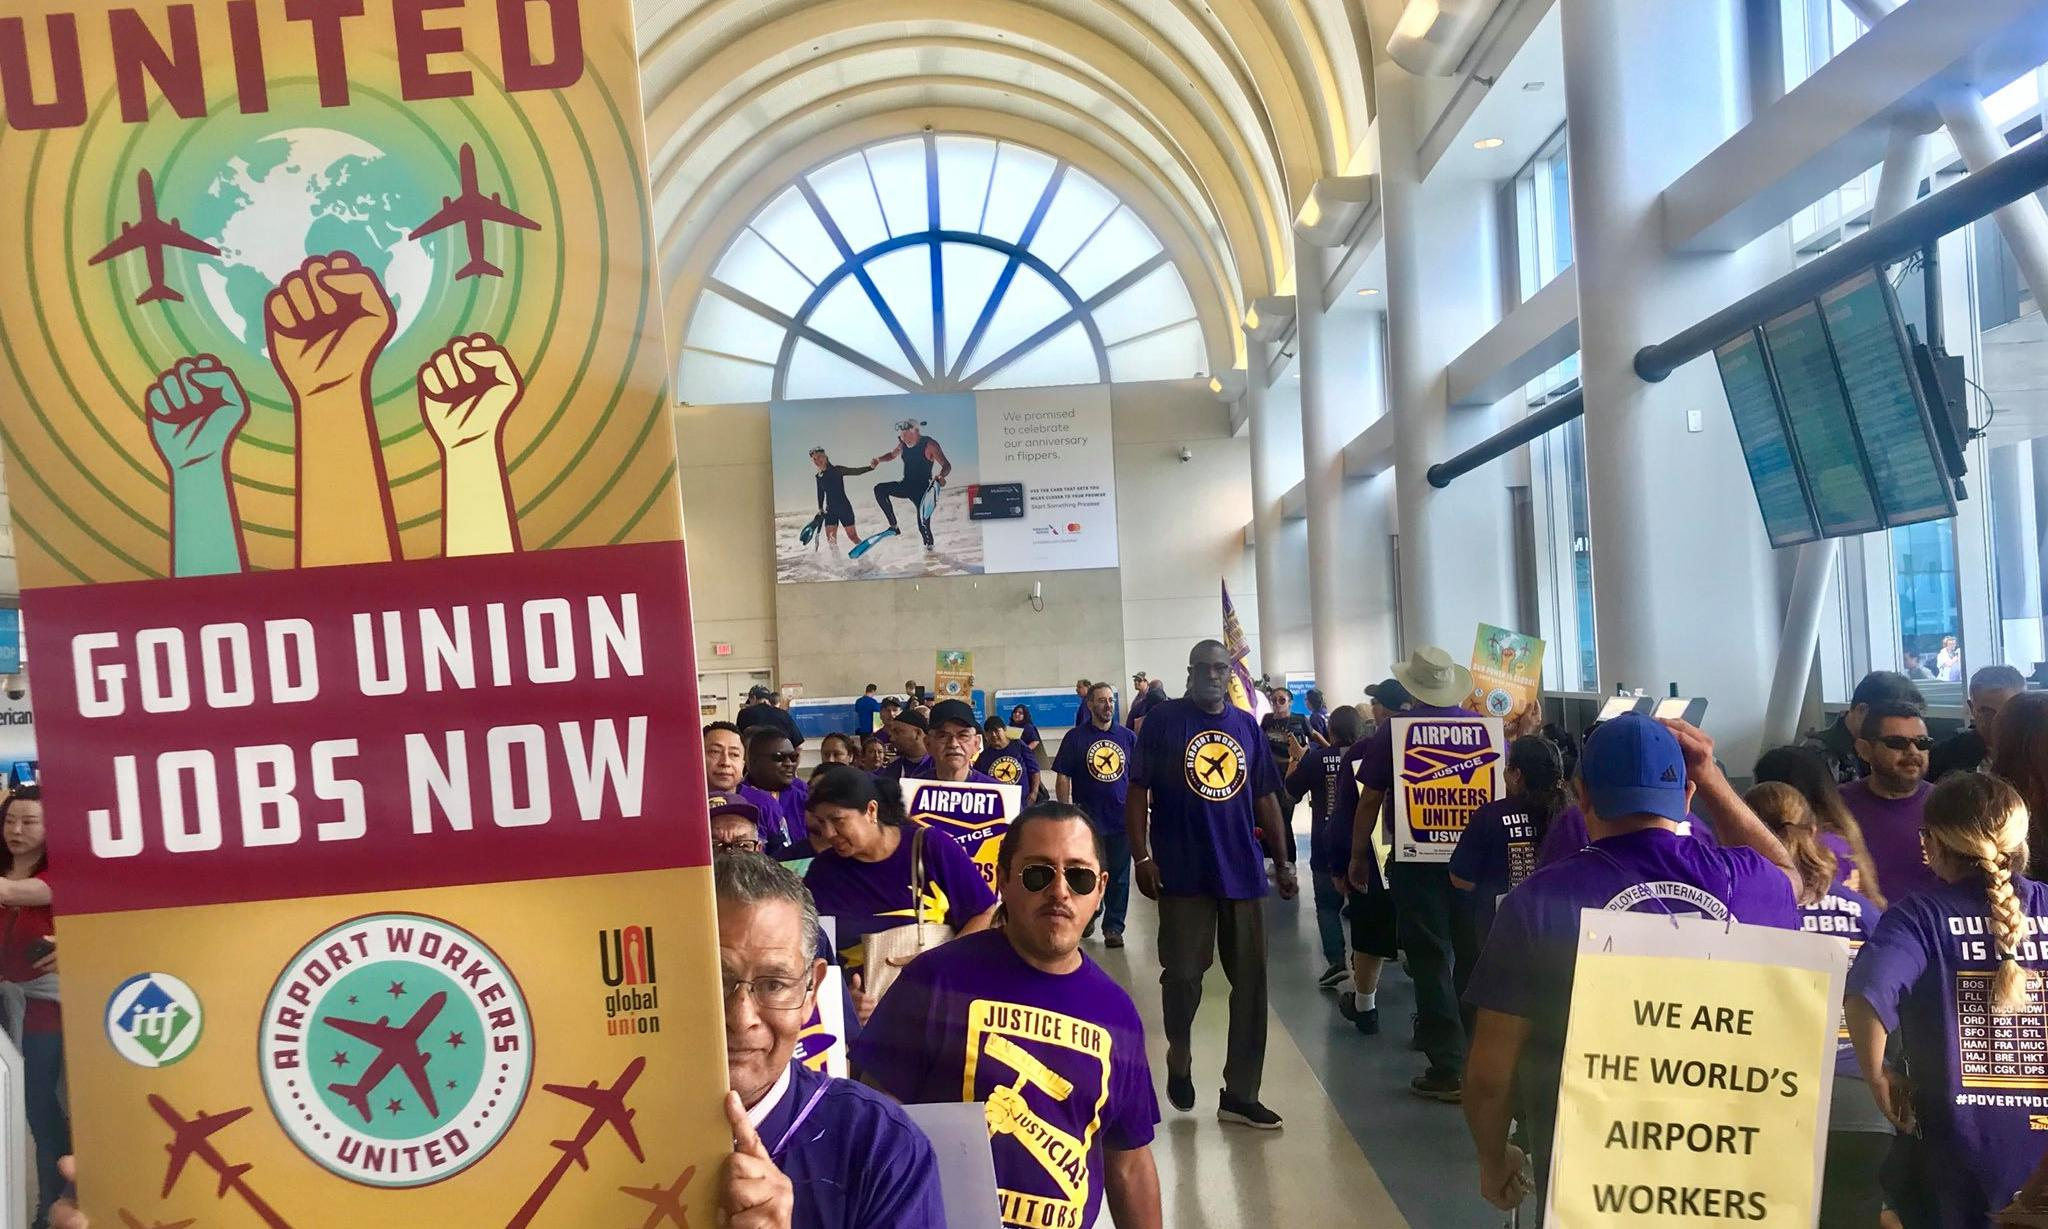 US airport workers struggle to make ends meet as industry profits soar